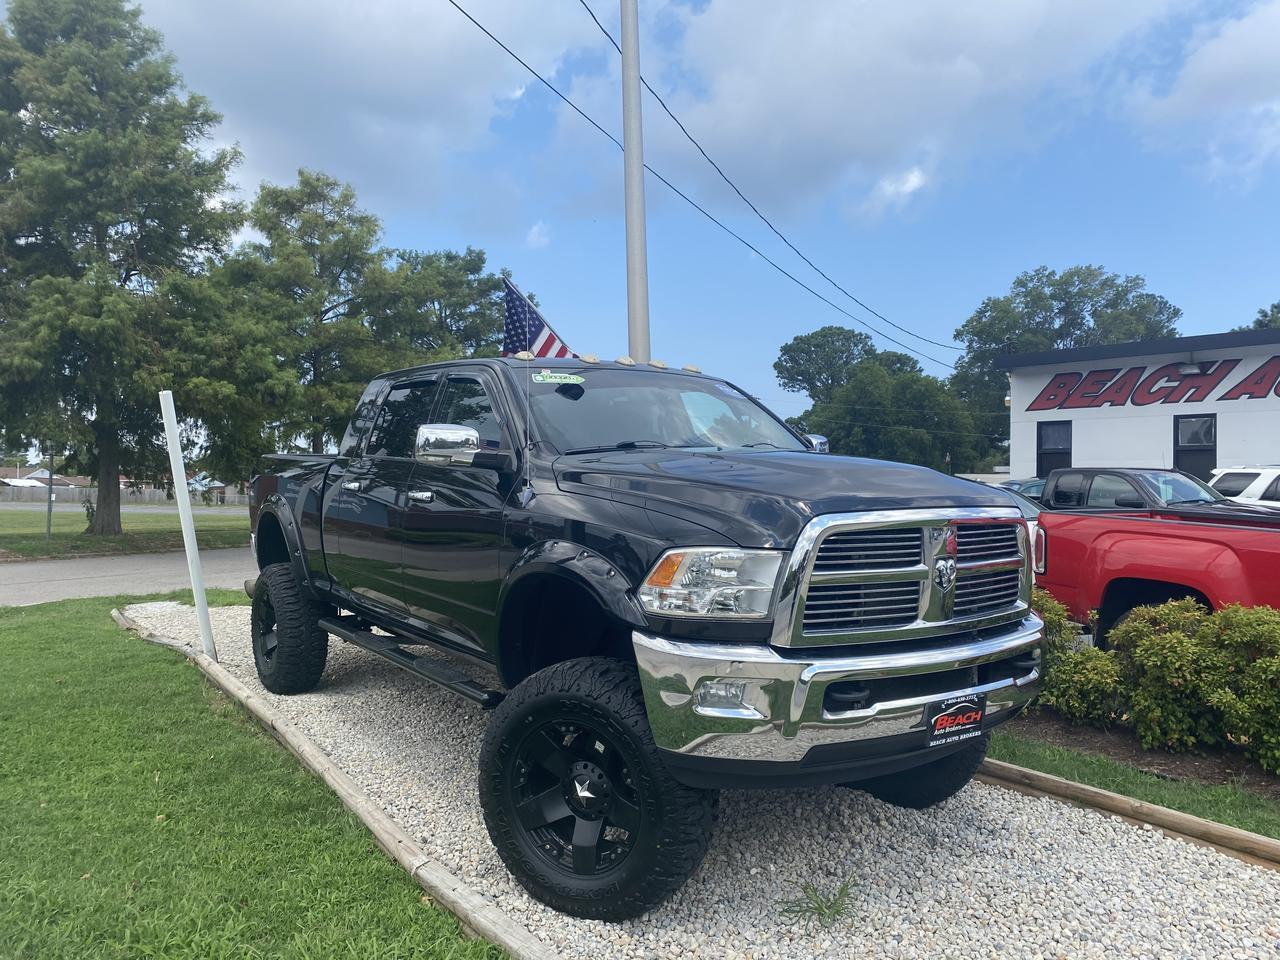 Used 2011 Dodge Ram 2500 Laramie Mega Cab 4x4 Warranty 6 7l Cummins Diesel Lifted Leather Nav Heated Cooled Seats Norfolk Va